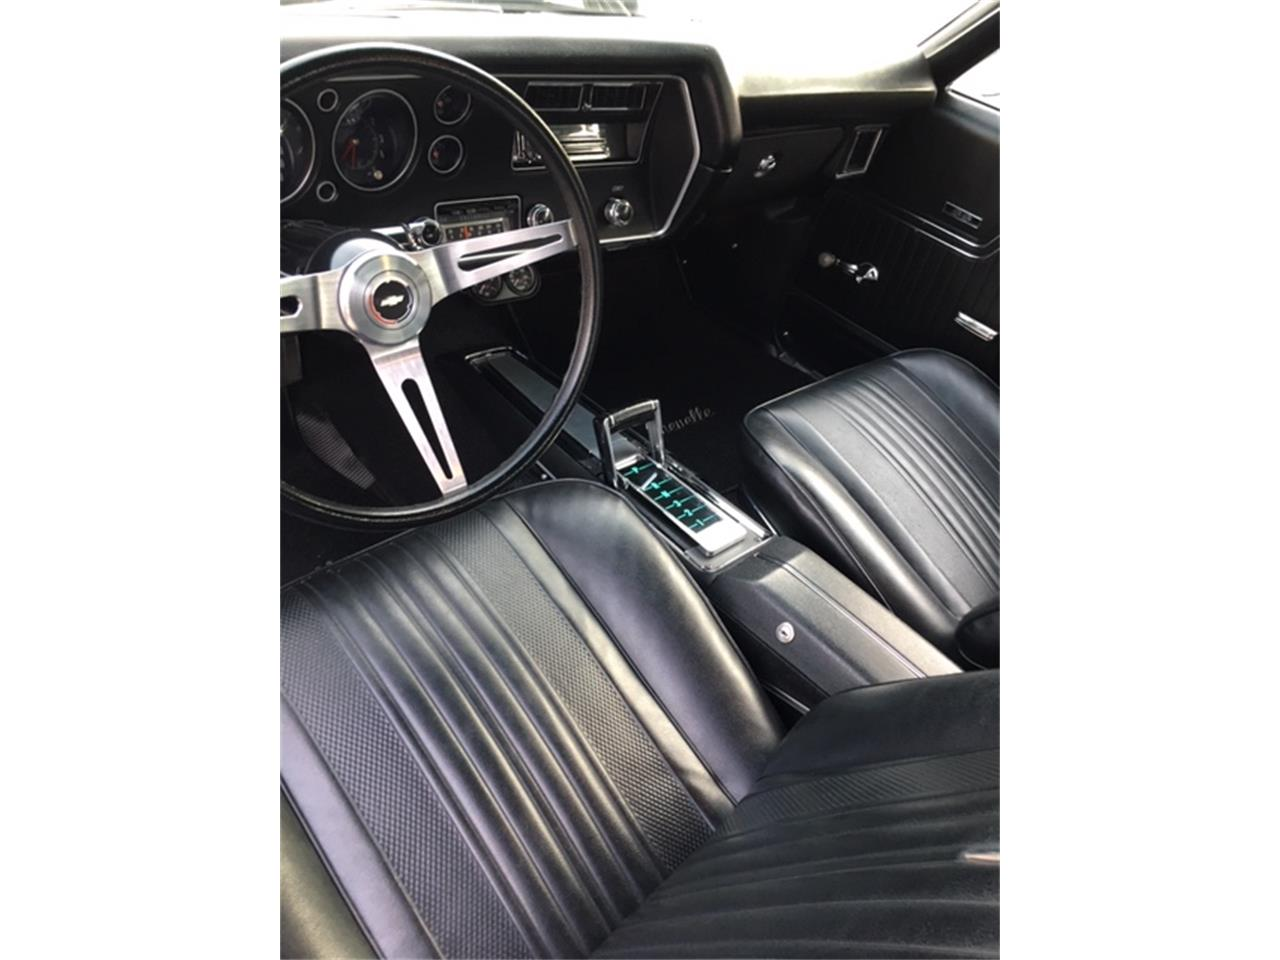 1970 Chevrolet Chevelle SS for sale in Metairie, LA – photo 20